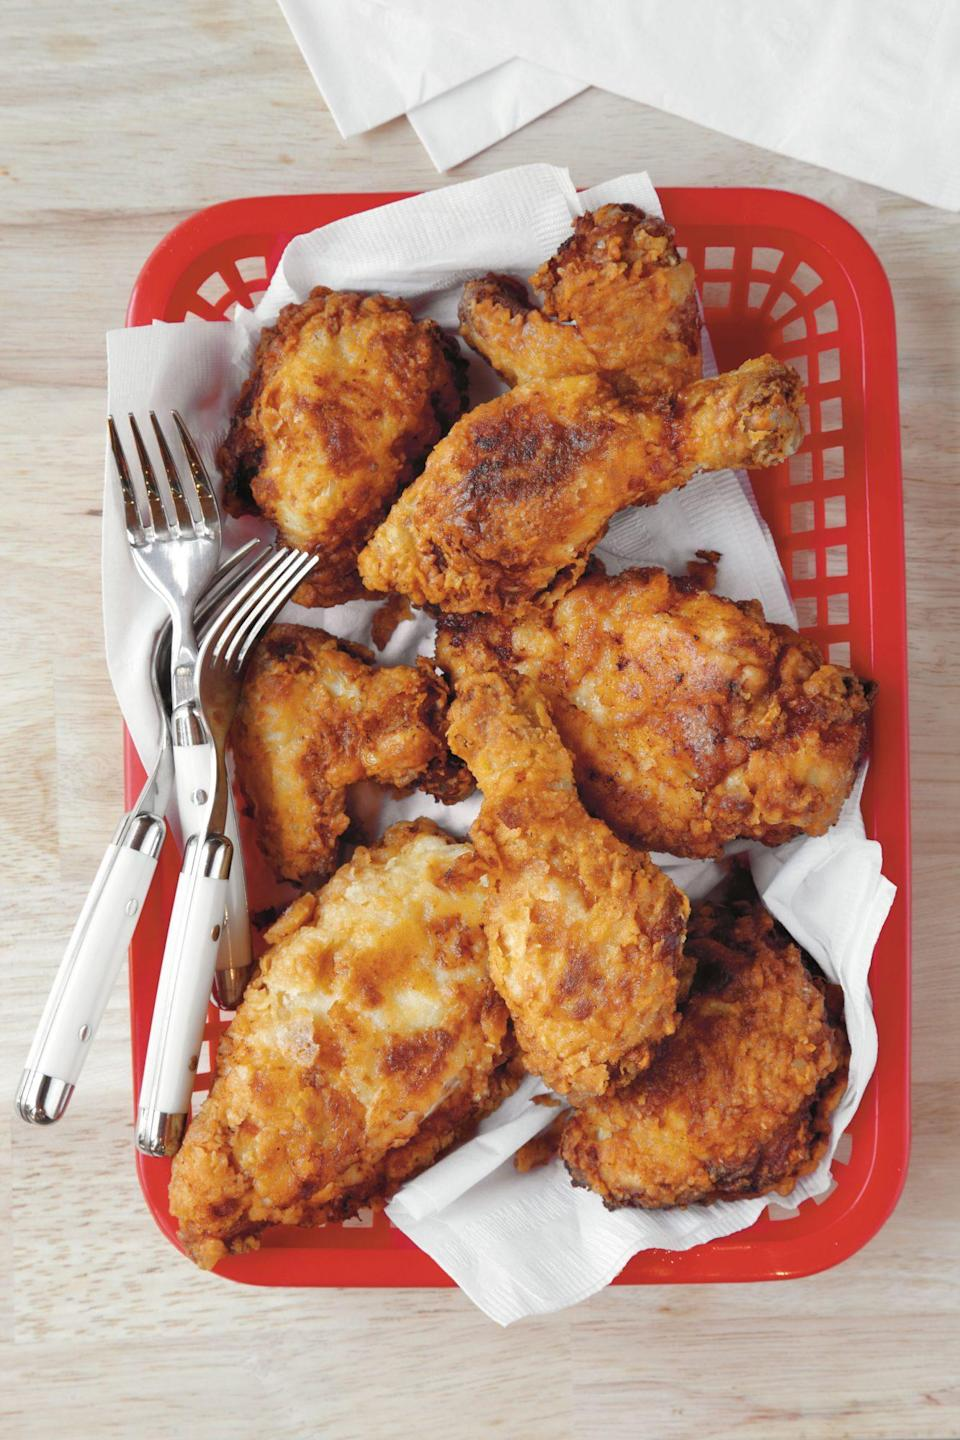 """<p><strong>Recipe: <a href=""""https://www.southernliving.com/recipes/mamas-fried-chicken"""" rel=""""nofollow noopener"""" target=""""_blank"""" data-ylk=""""slk:Mama's Fried Chicken"""" class=""""link rapid-noclick-resp"""">Mama's Fried Chicken</a></strong></p> <p>This traditional fried chicken recipe has a short, no-fuss ingredient list. </p>"""